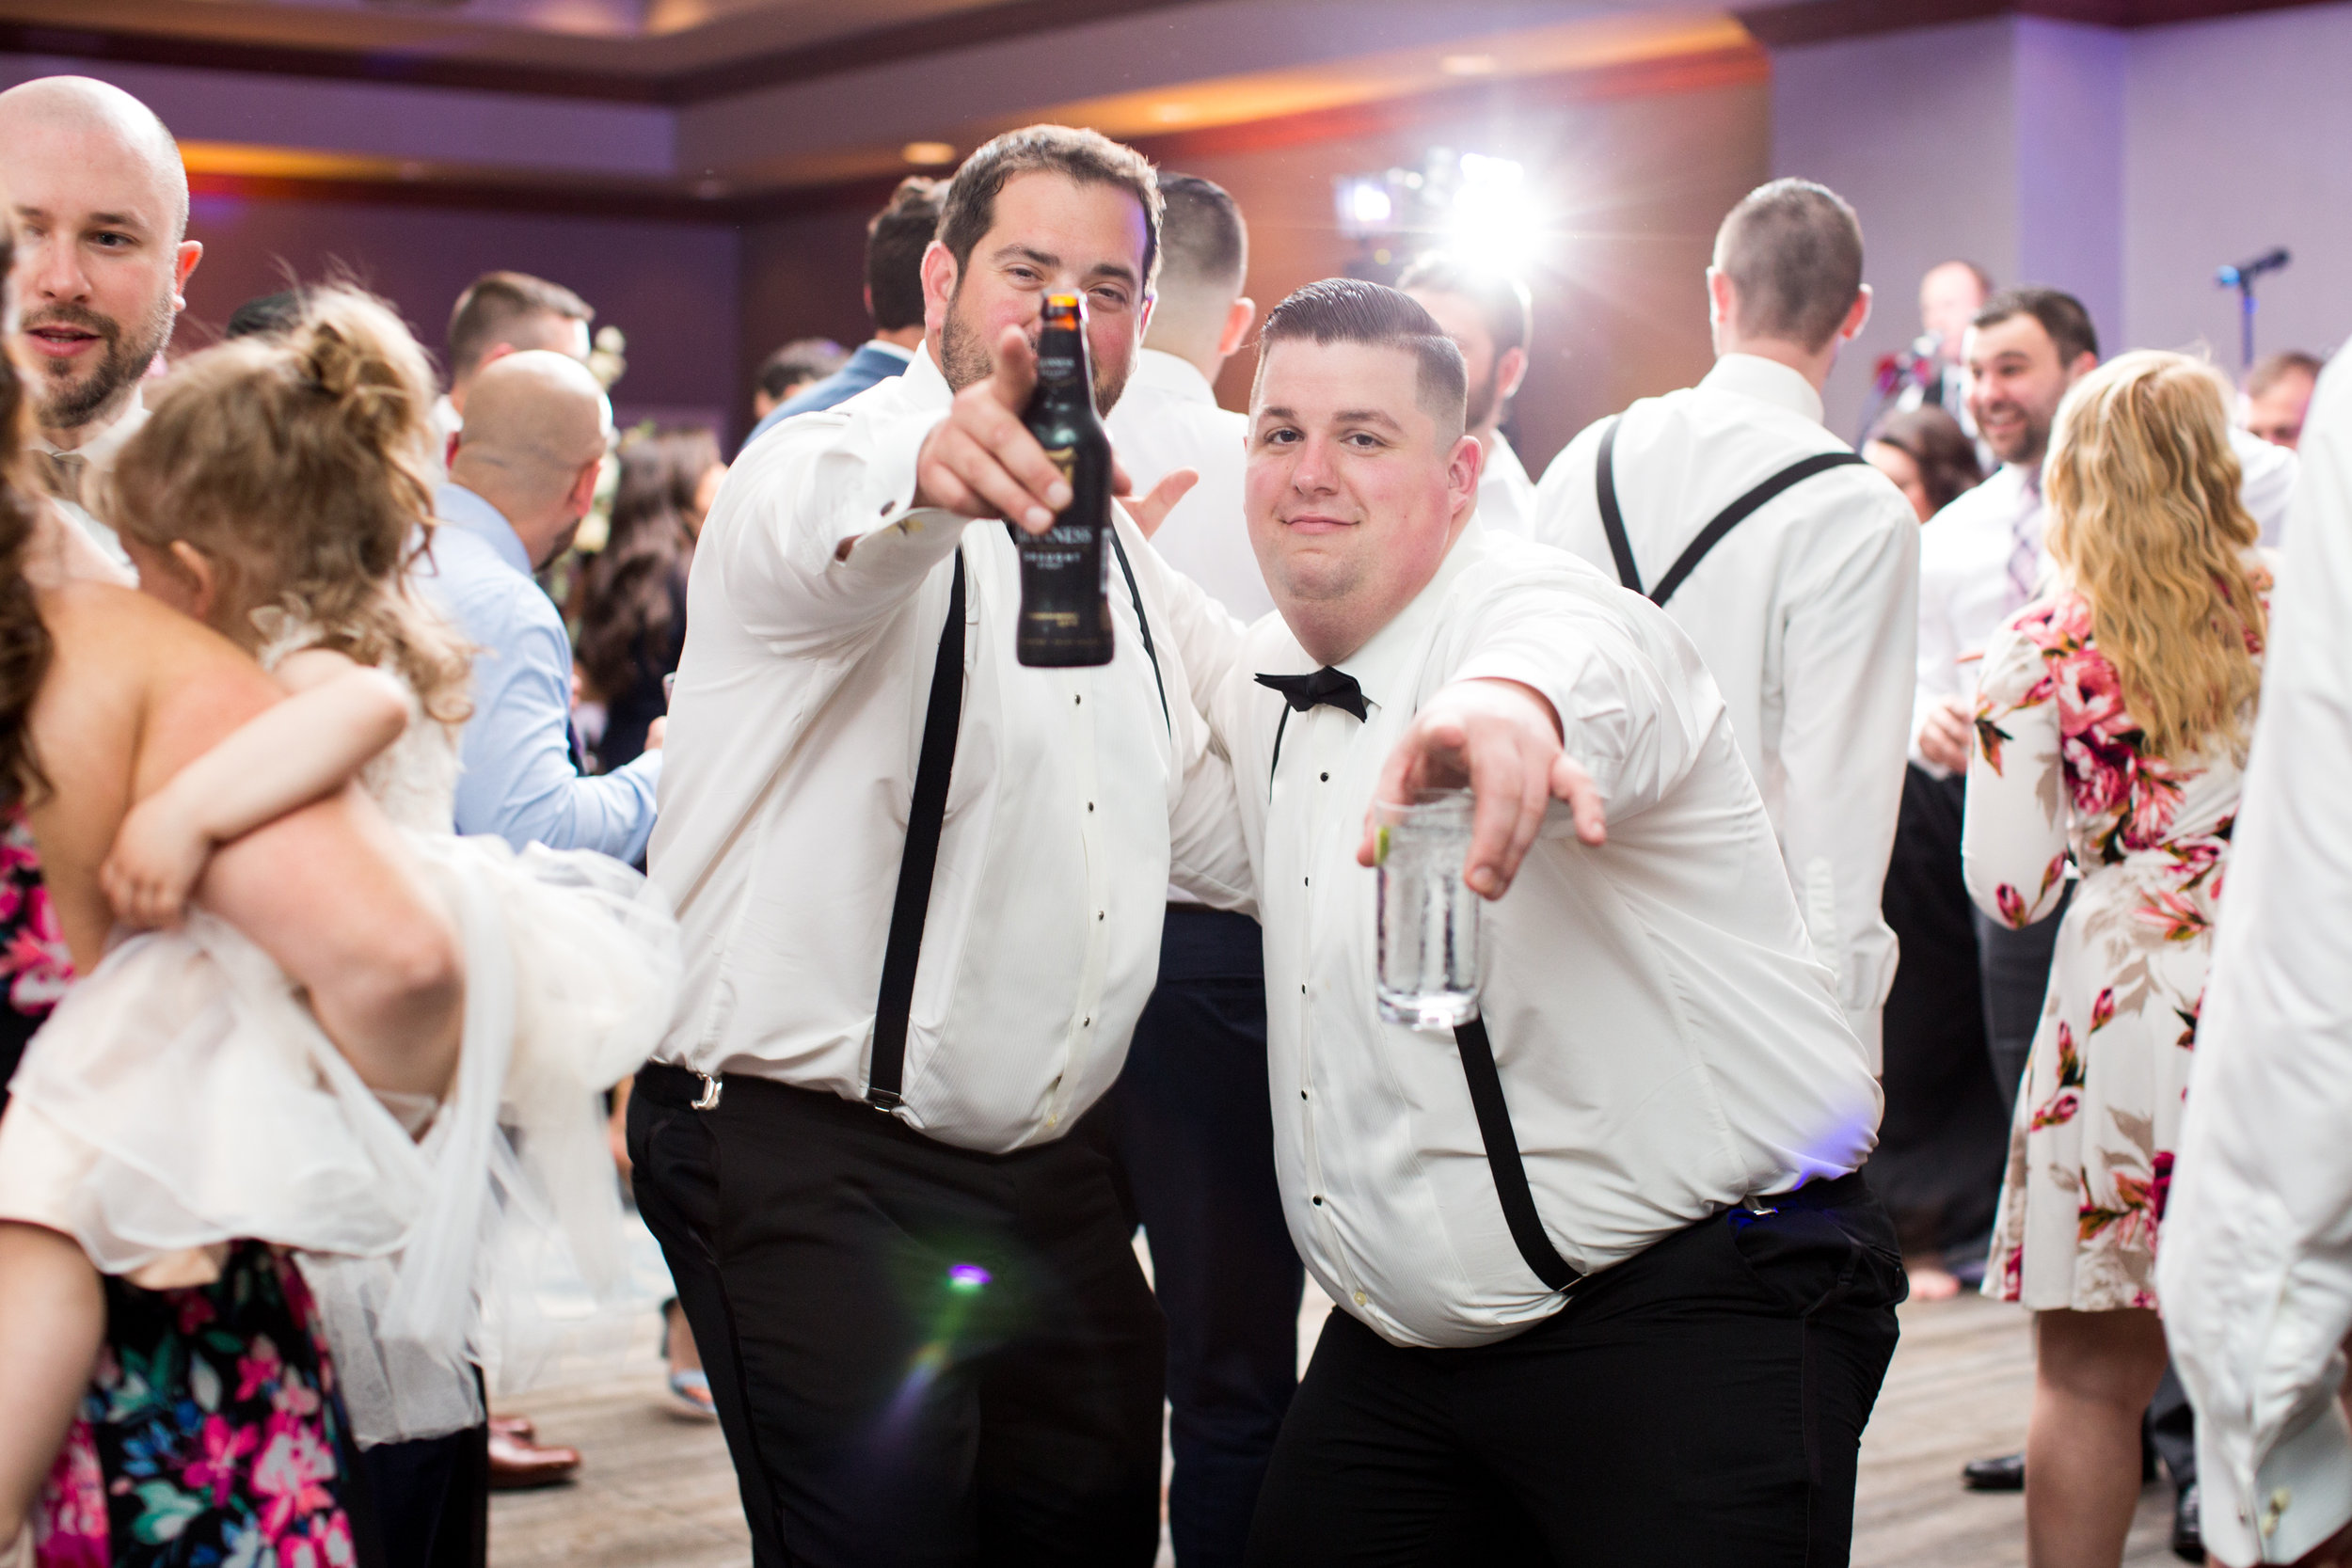 Hilton Scranton PA Wedding Photos_JDP-152.jpg